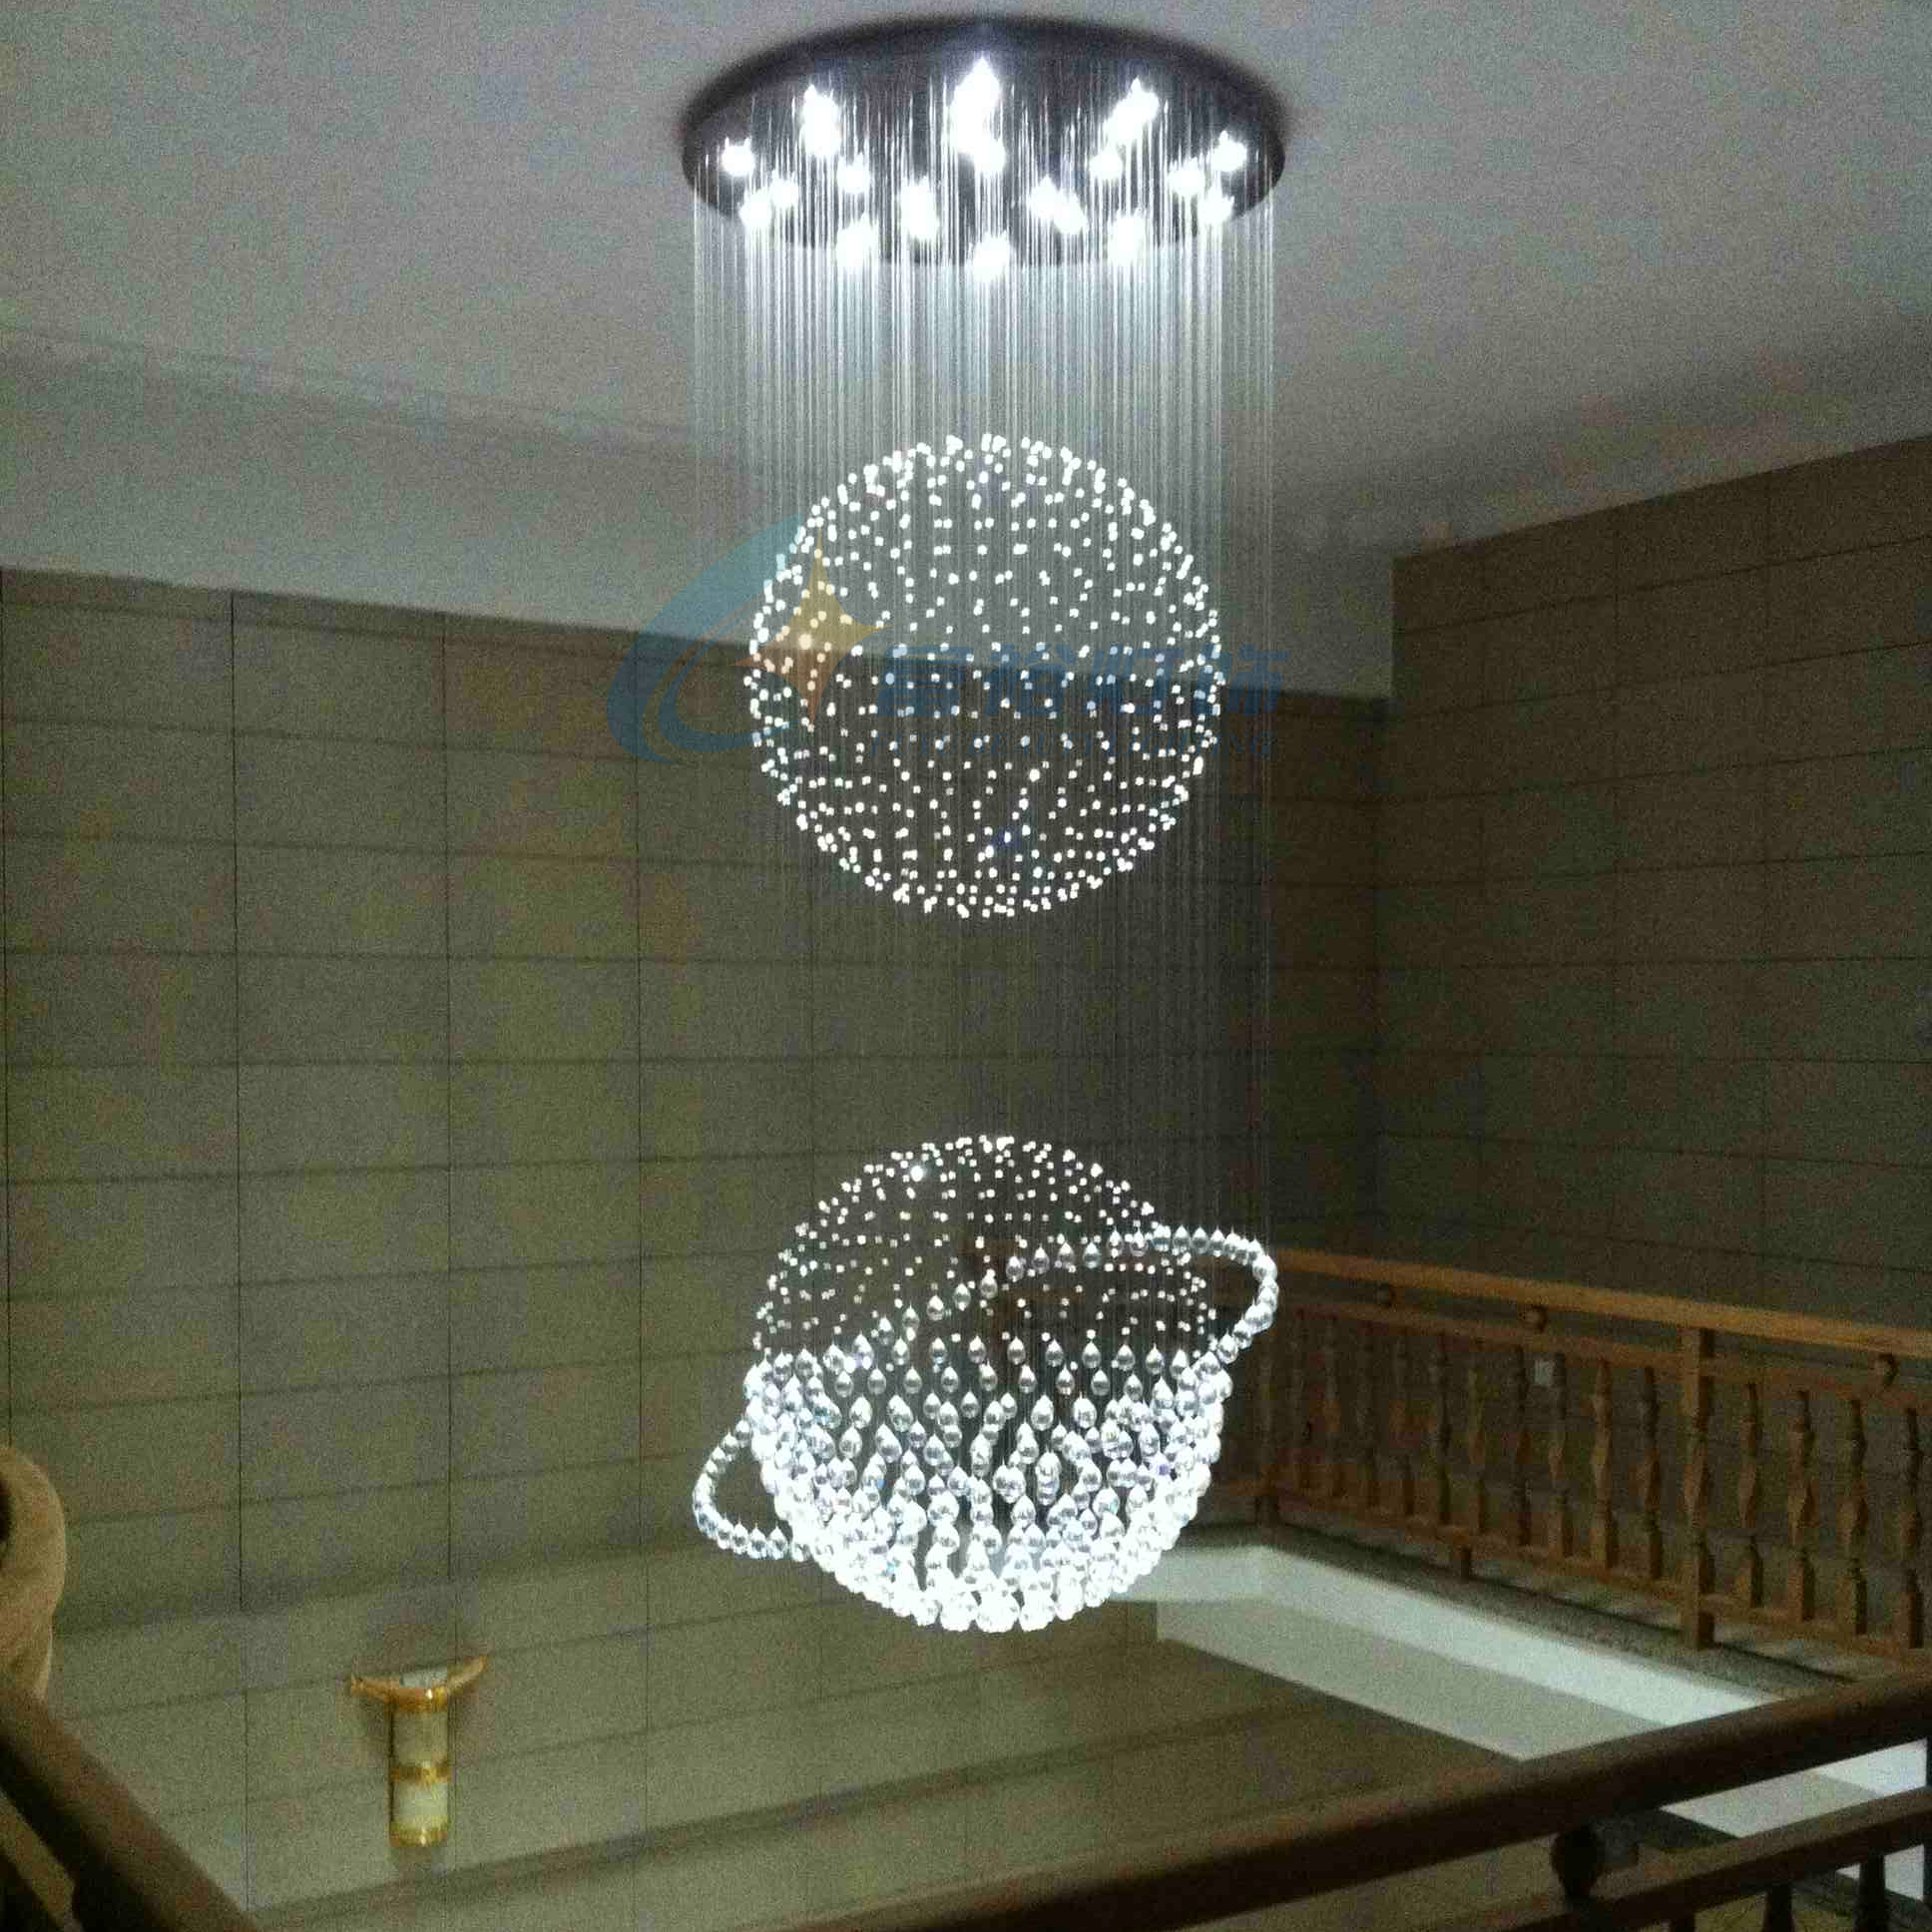 Crystal pendant light led restaurant lights modern brief lamps stair lamp large pendant light 8632 minimalist villa long lighting stairs lights white ceramic stair stair lamp pendant lamps rotating modern pendant lights